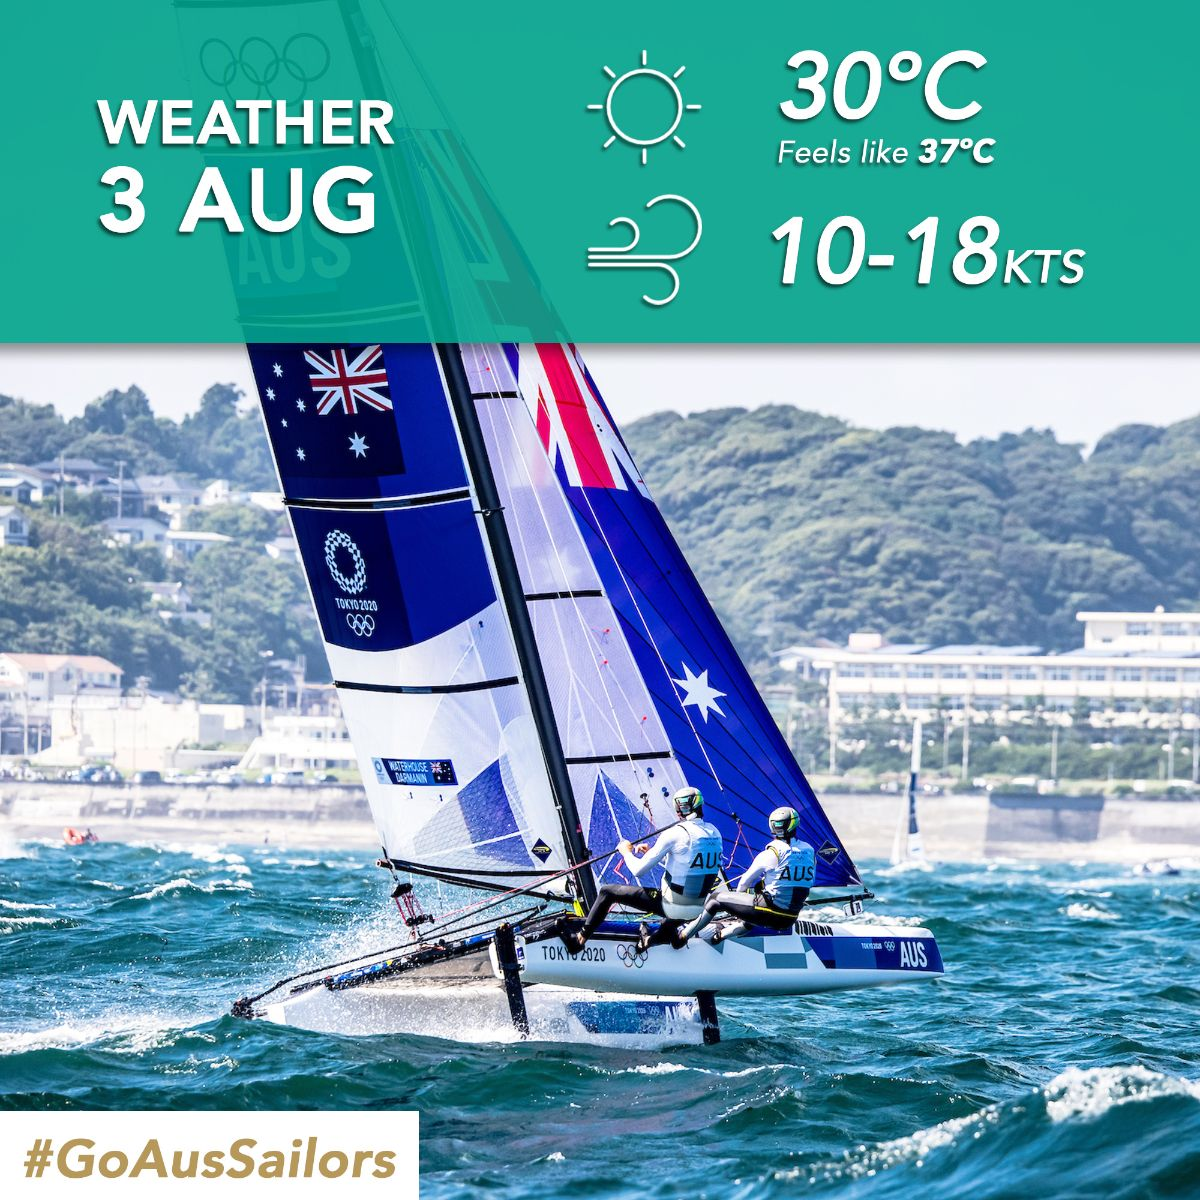 10 knots, with stronger gusts, are forecasted for today's racing.